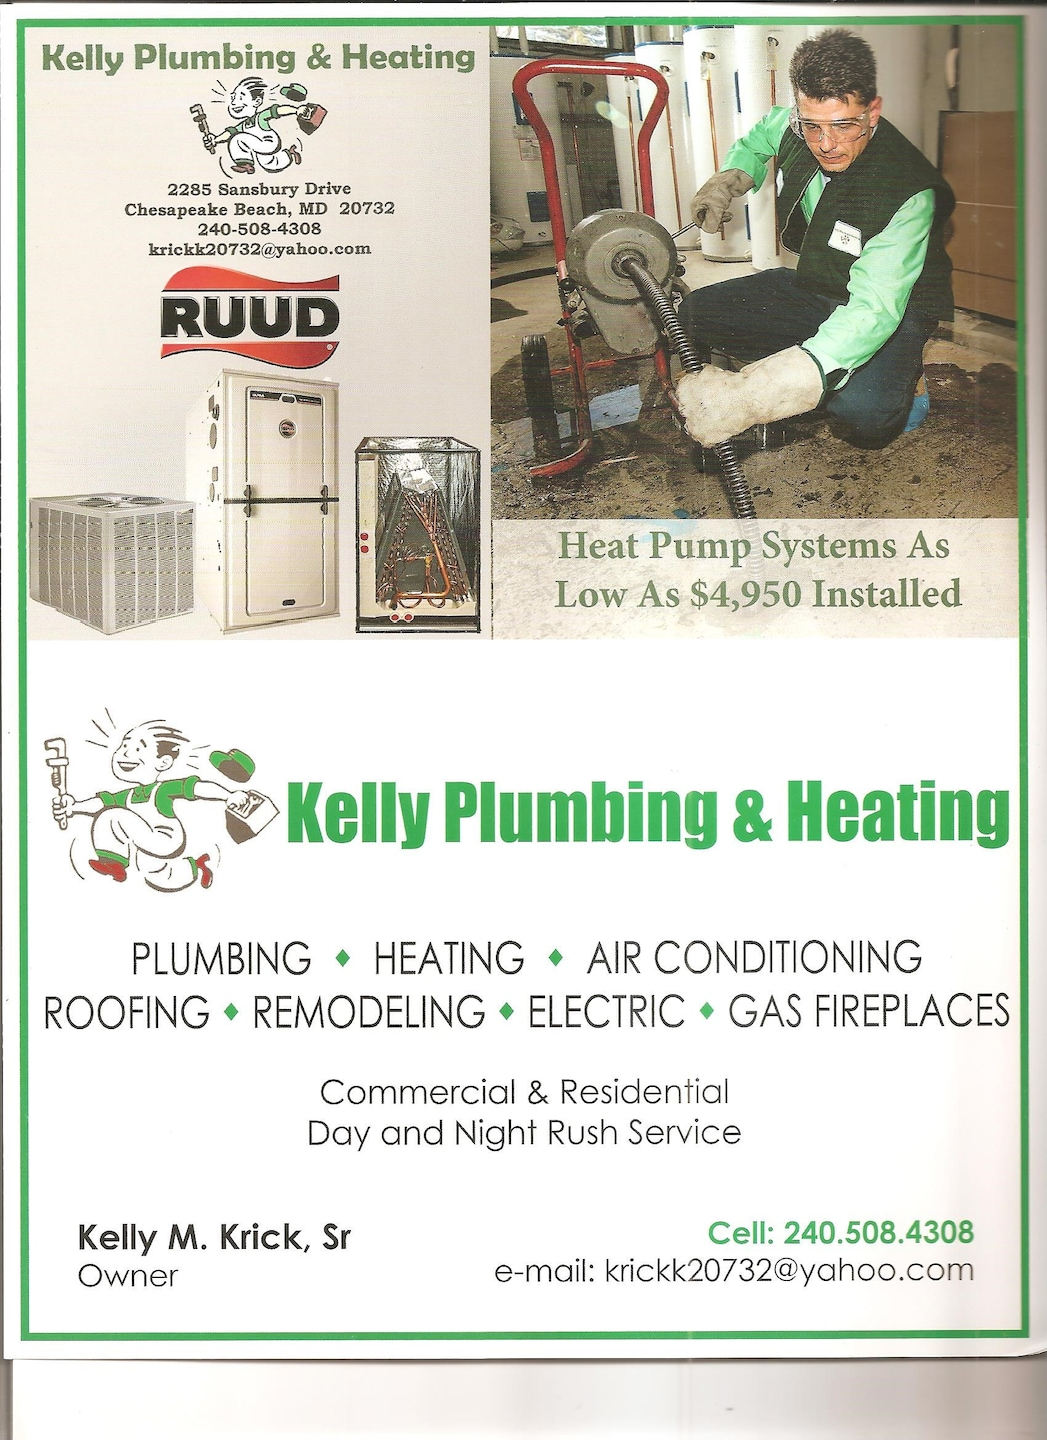 Kelly Plumbing & Heating